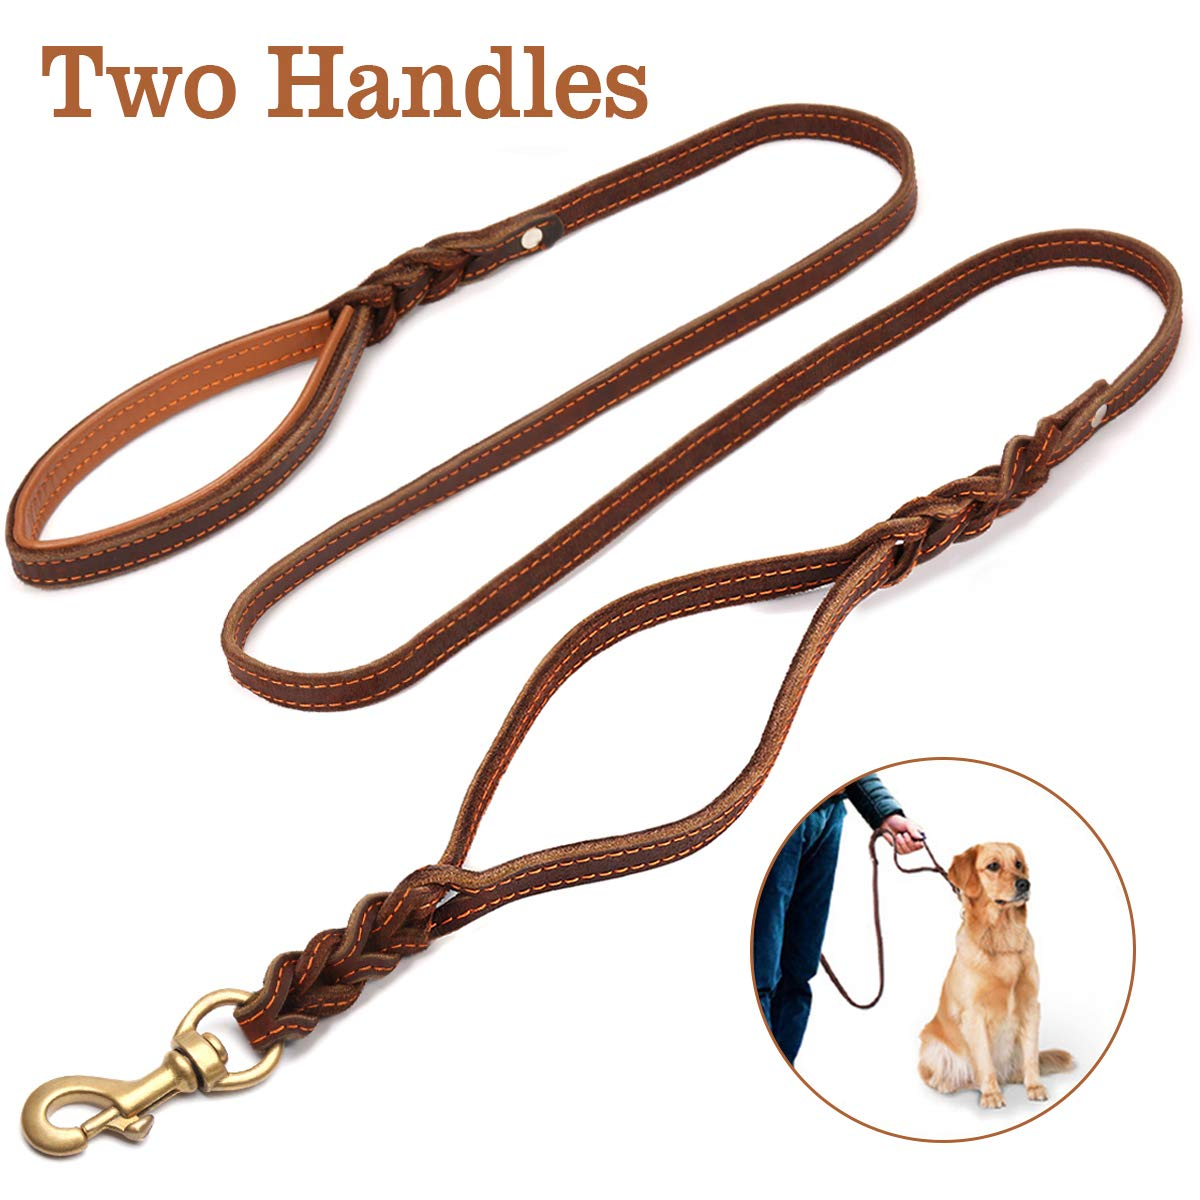 FOCUSPET Heavy Duty Leather Dog Leash with 2 Handles,Padded Traffic Handle for Extra Control,6Ft Dog Training Walking Leashes for Medium Large Dogs by FOCUSPET